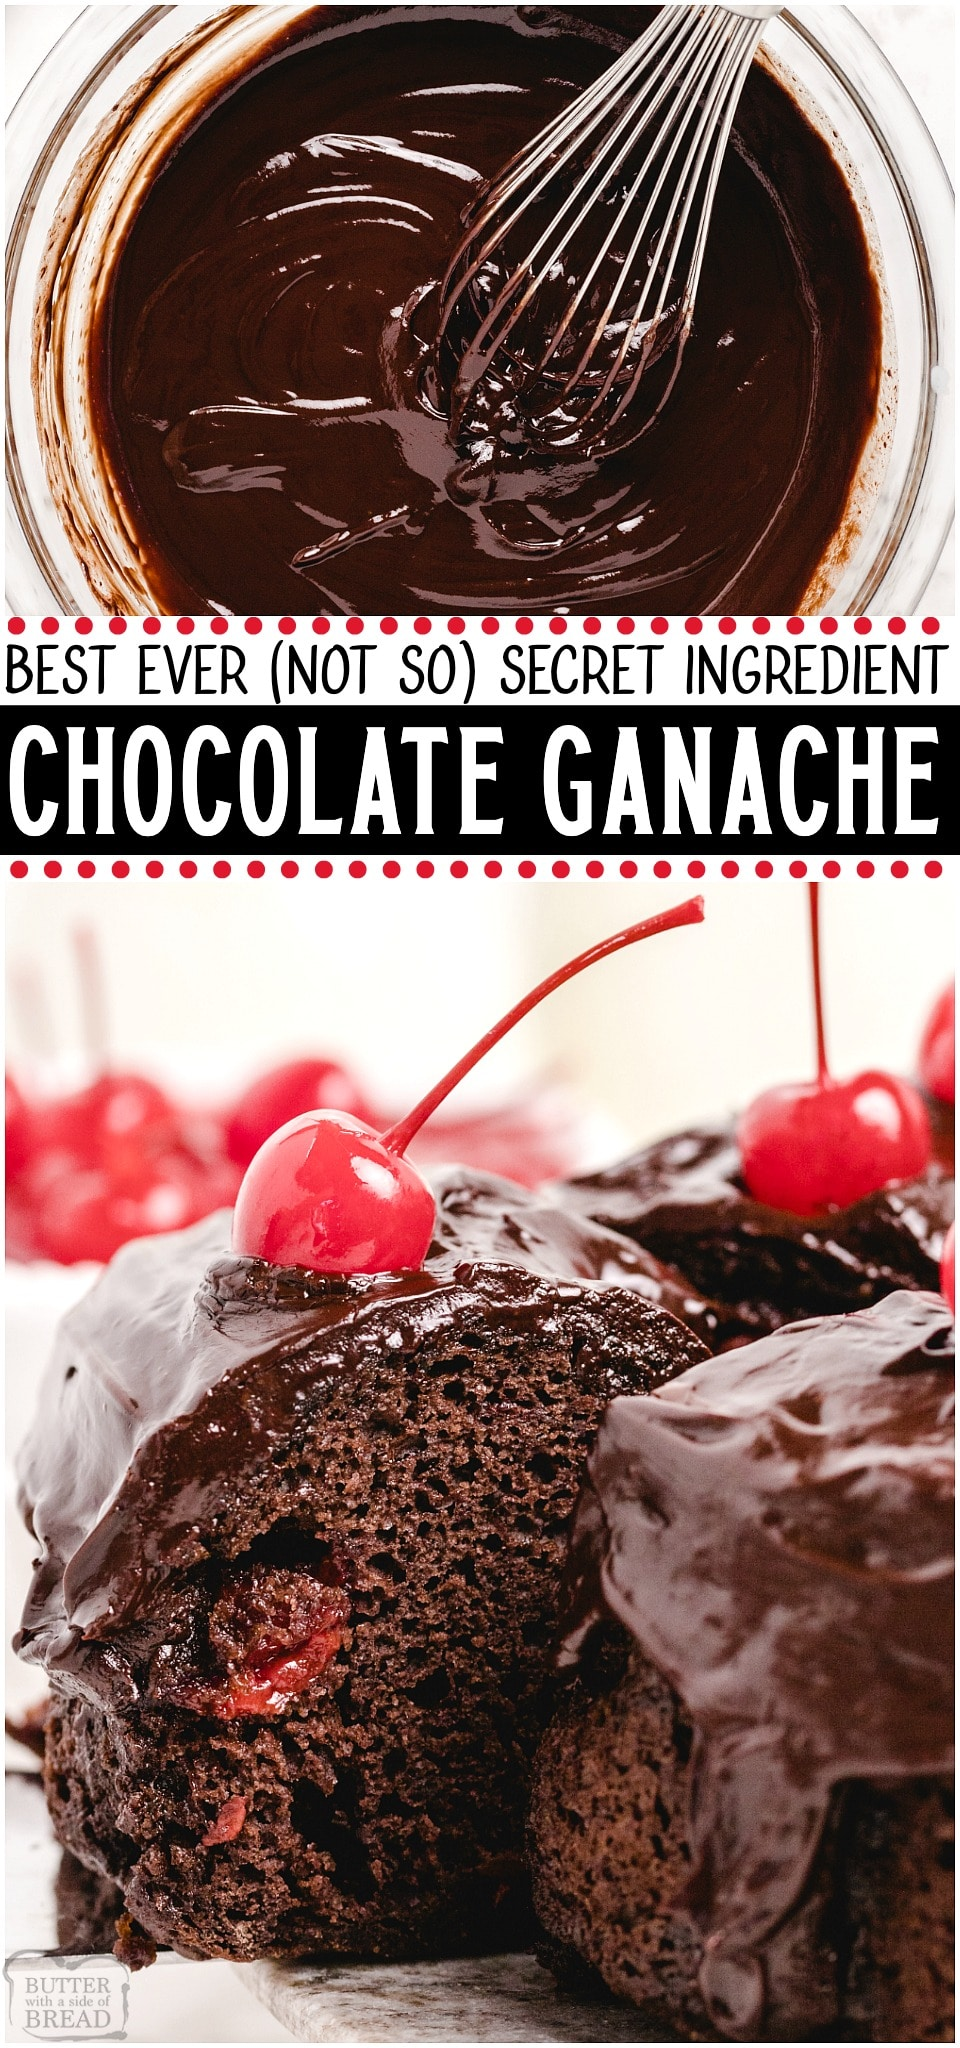 """Best Chocolate Ganache Ever made with just 3 ingredients & yields the silkiest, smooth & rich ganache. You MUST TRY my recipe- the """"secret"""" ingredient makes my chocolate ganache incredible!#chocolate #ganache #dessert #homemade #butter #easyrecipe from BUTTER WITH A SIDE OF BREAD"""